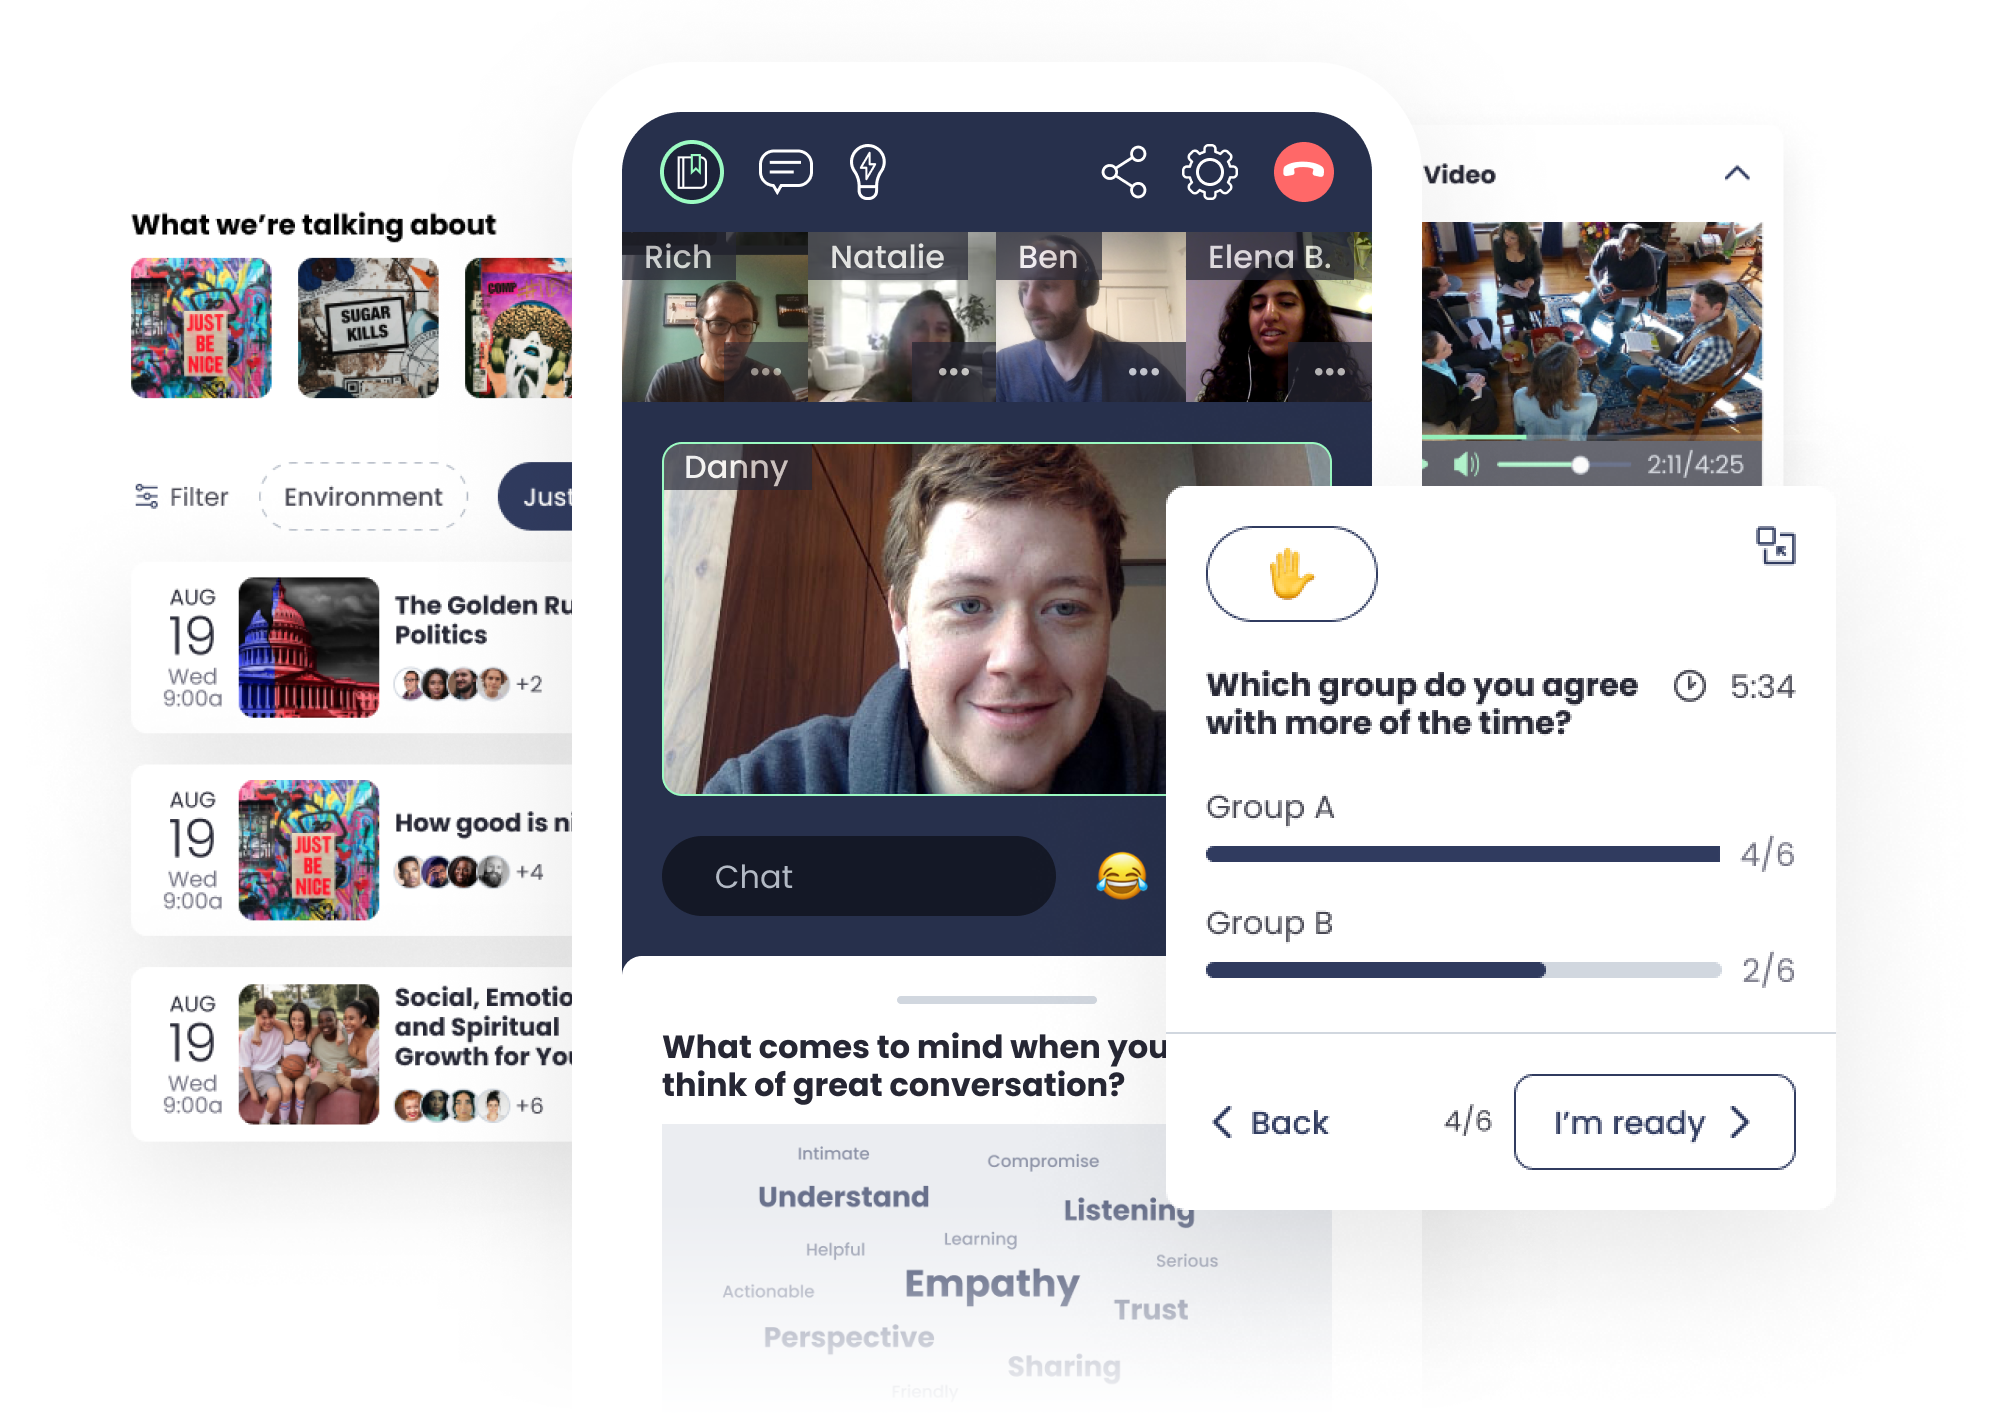 Screenshots of the product, including Conversation Guides, Events, the Video Conversation Experience, Surveys, and Word Clouds.